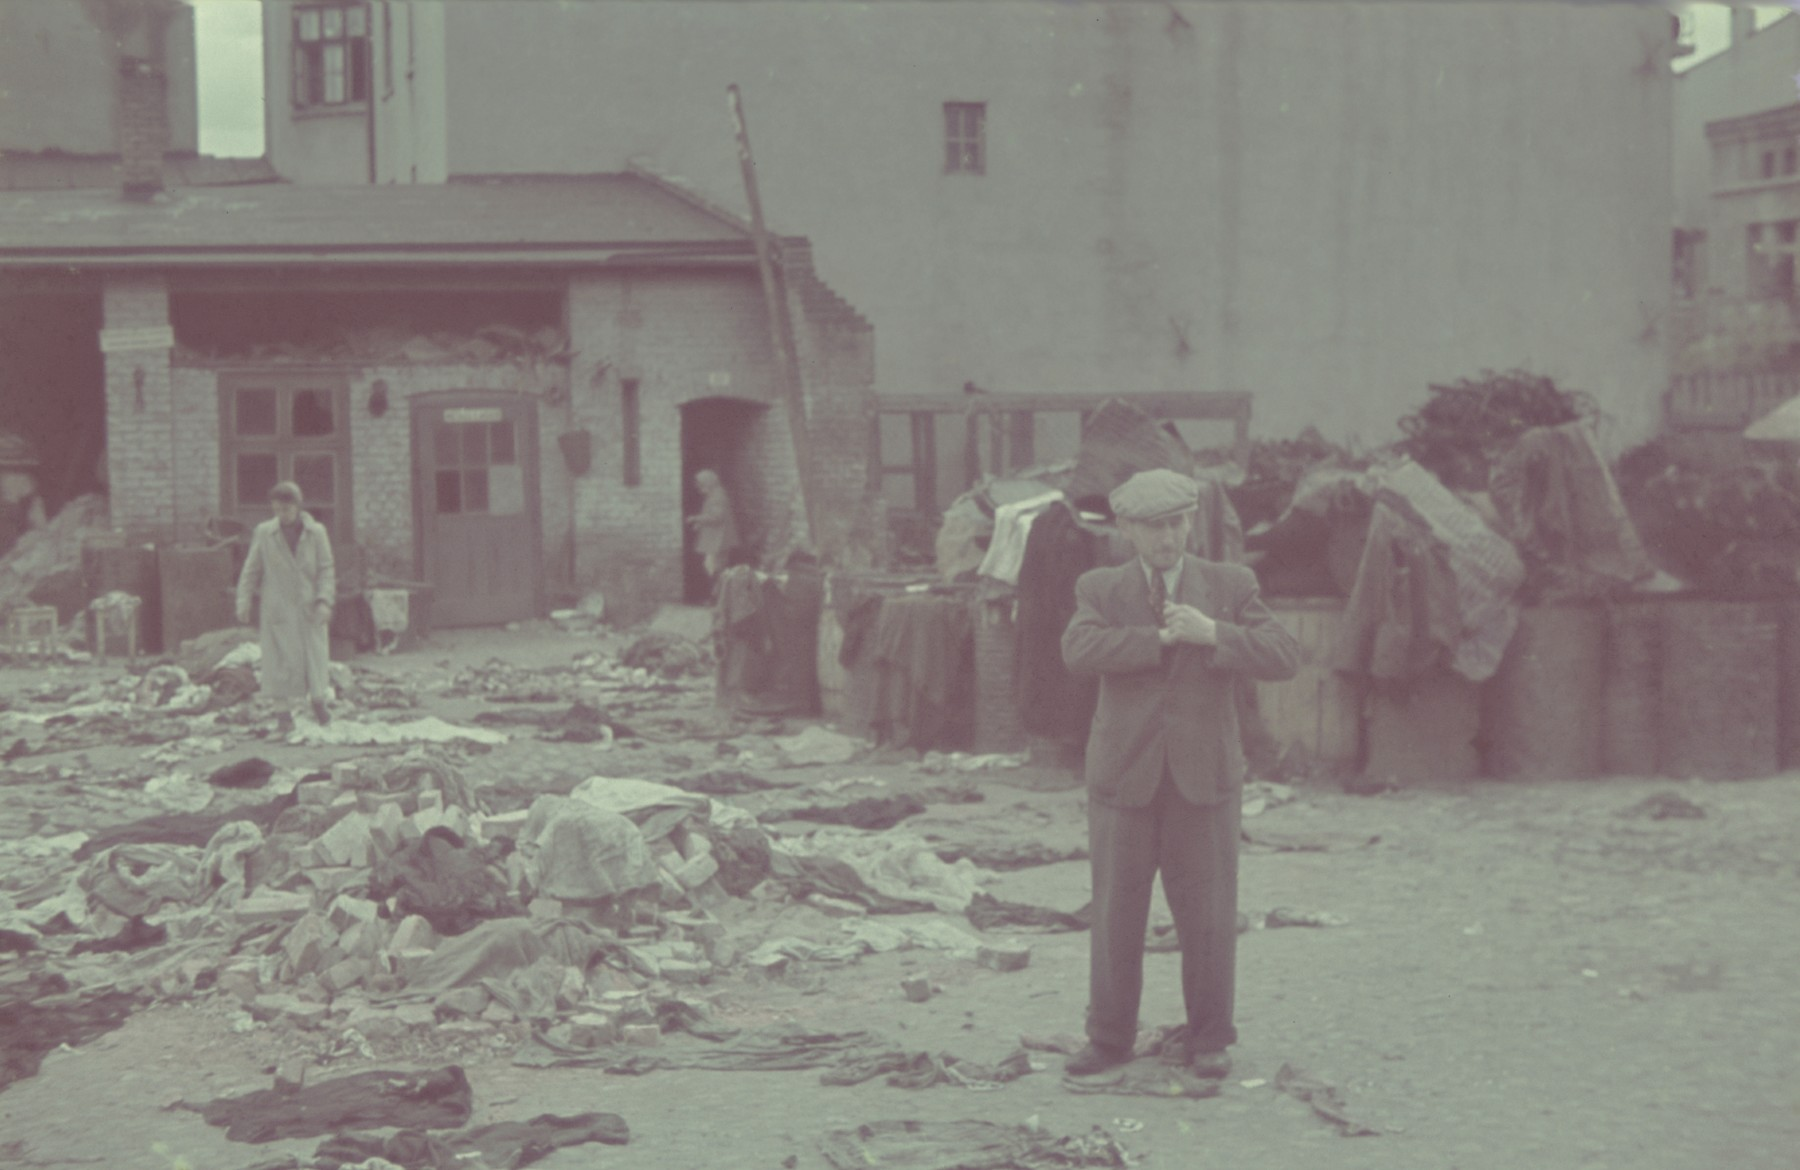 Two men walk through a courtyard strewn with rags in what [probably is a workshop in the Lodz ghetto].